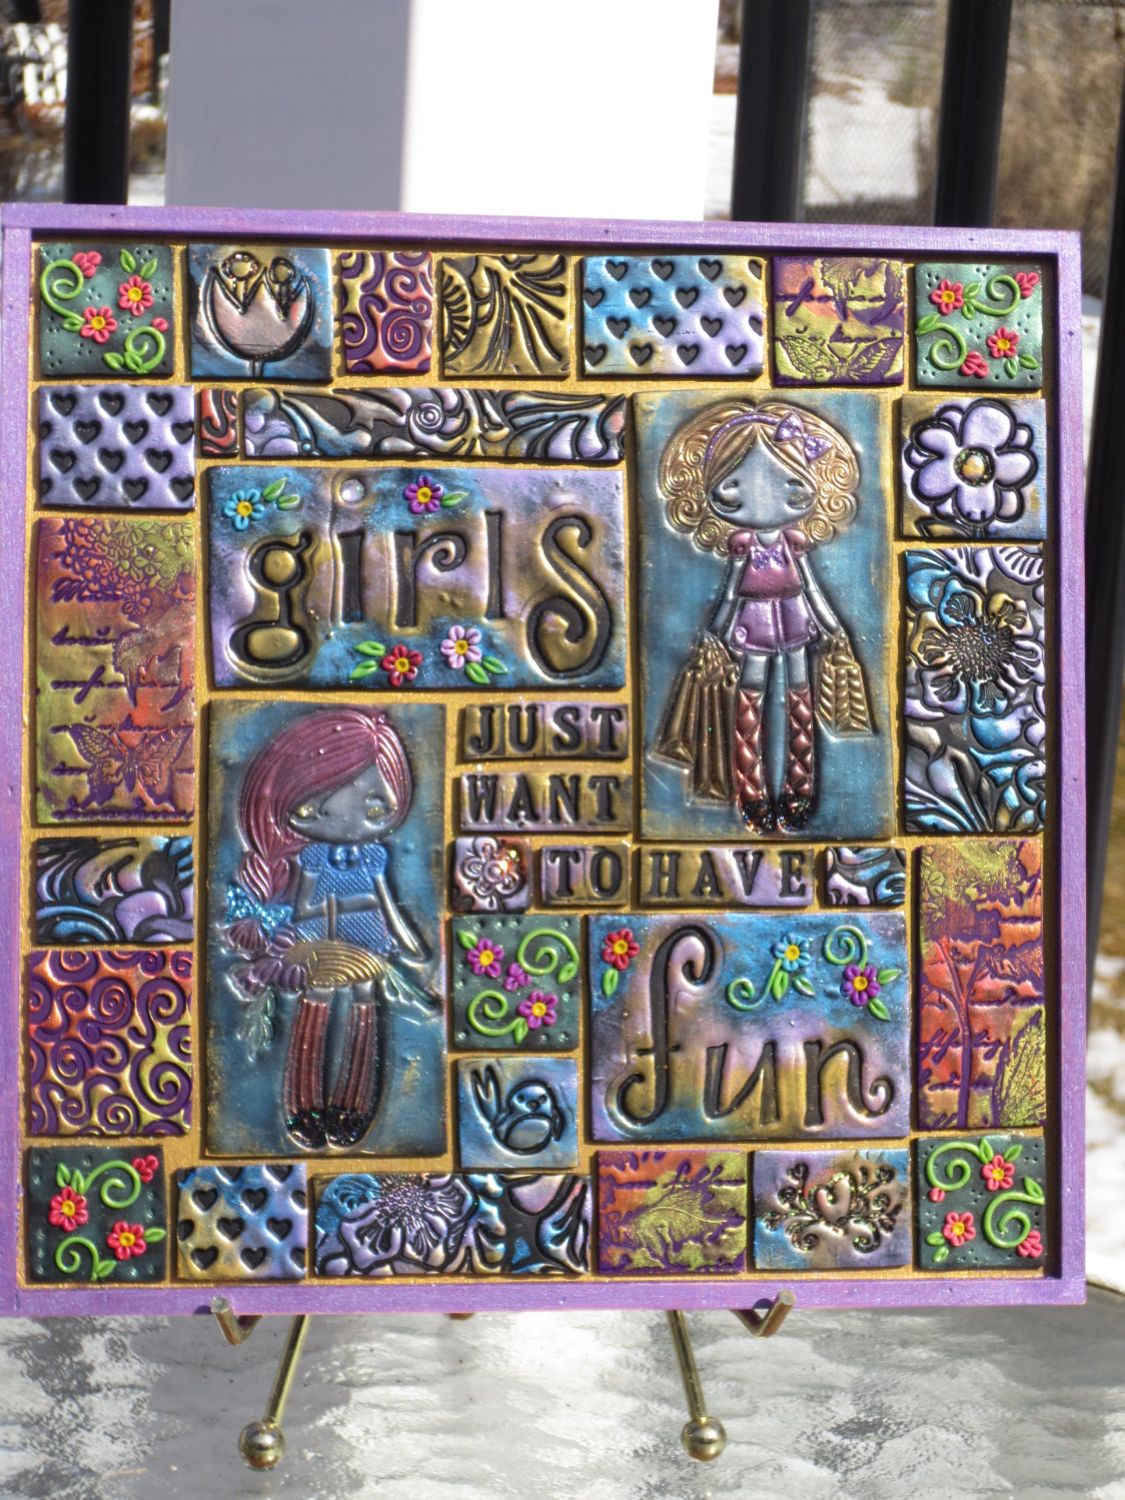 Polymer Clay Tiles With Stamped Images And Lique Flowers Have Been Accented Glitter Colored Mica Powders